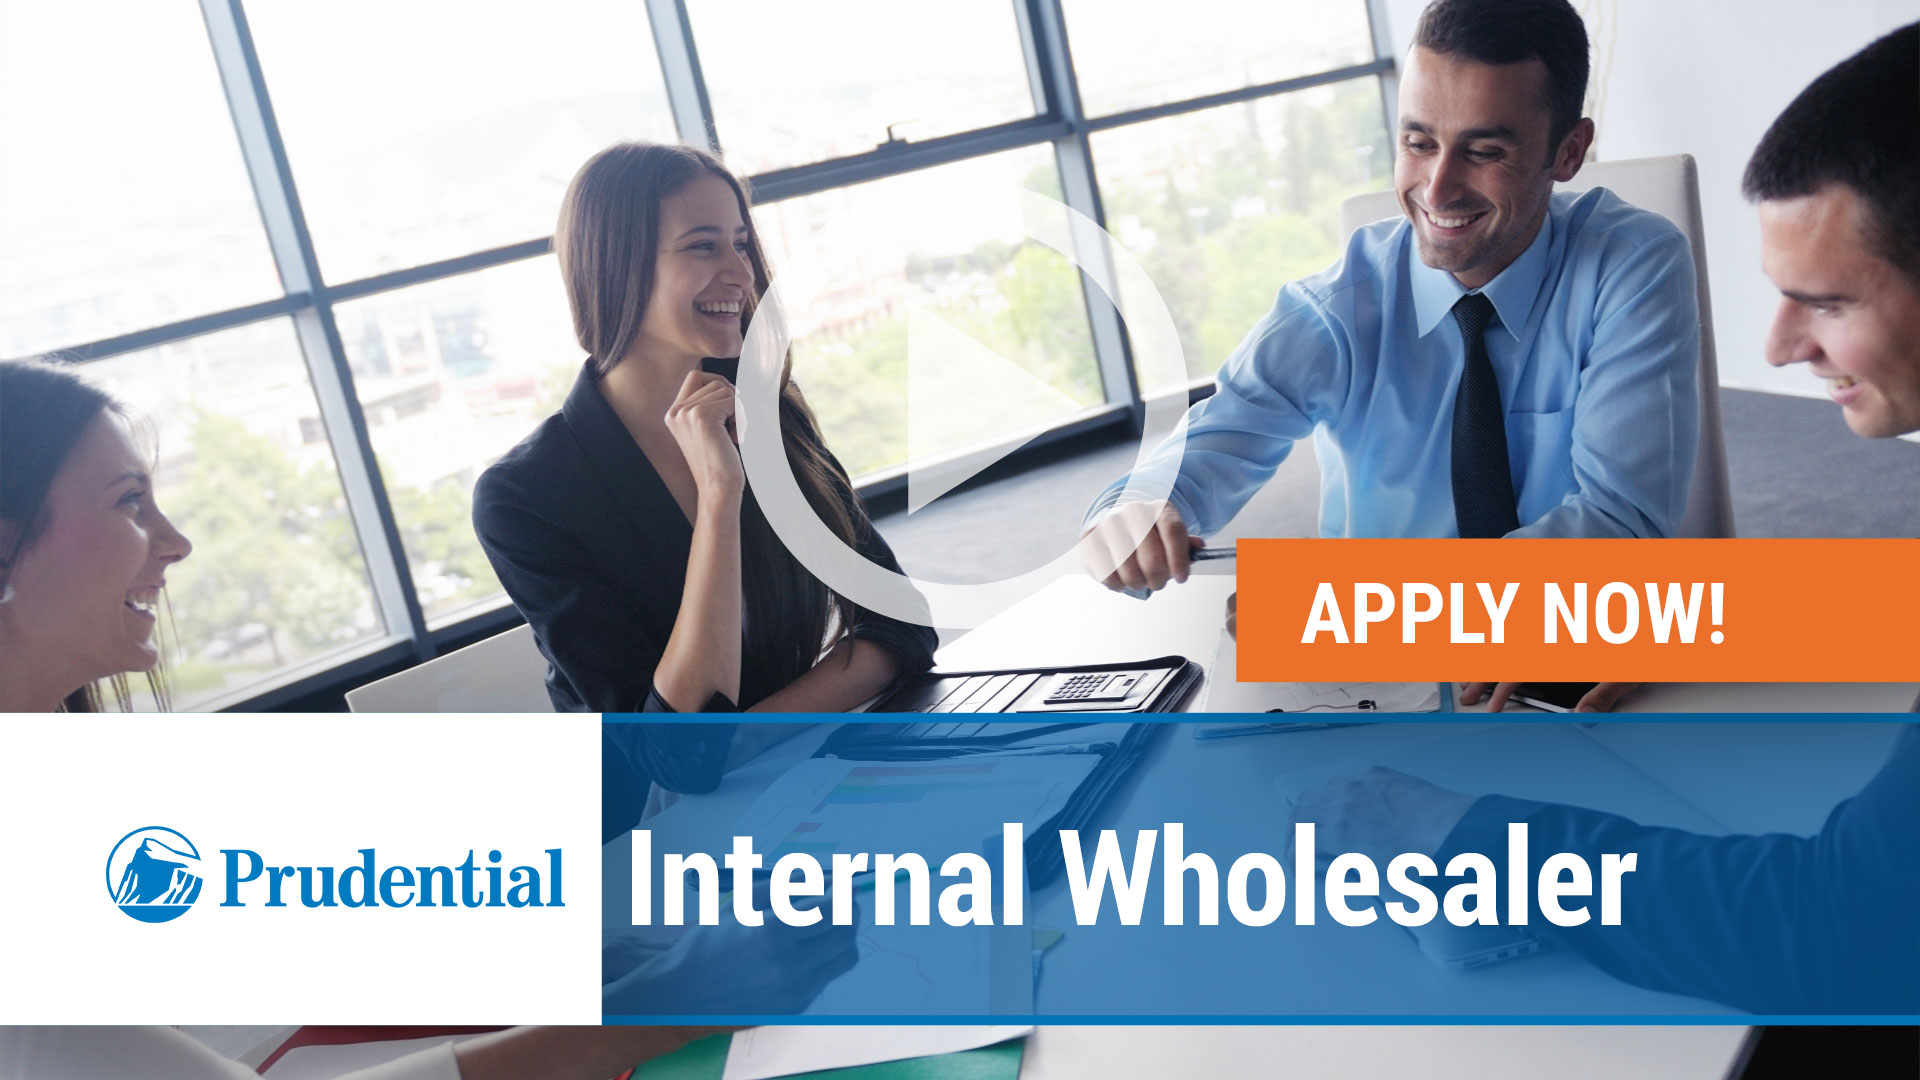 Watch our careers video for available job opening Internal Wholesaler in Newark, NJ